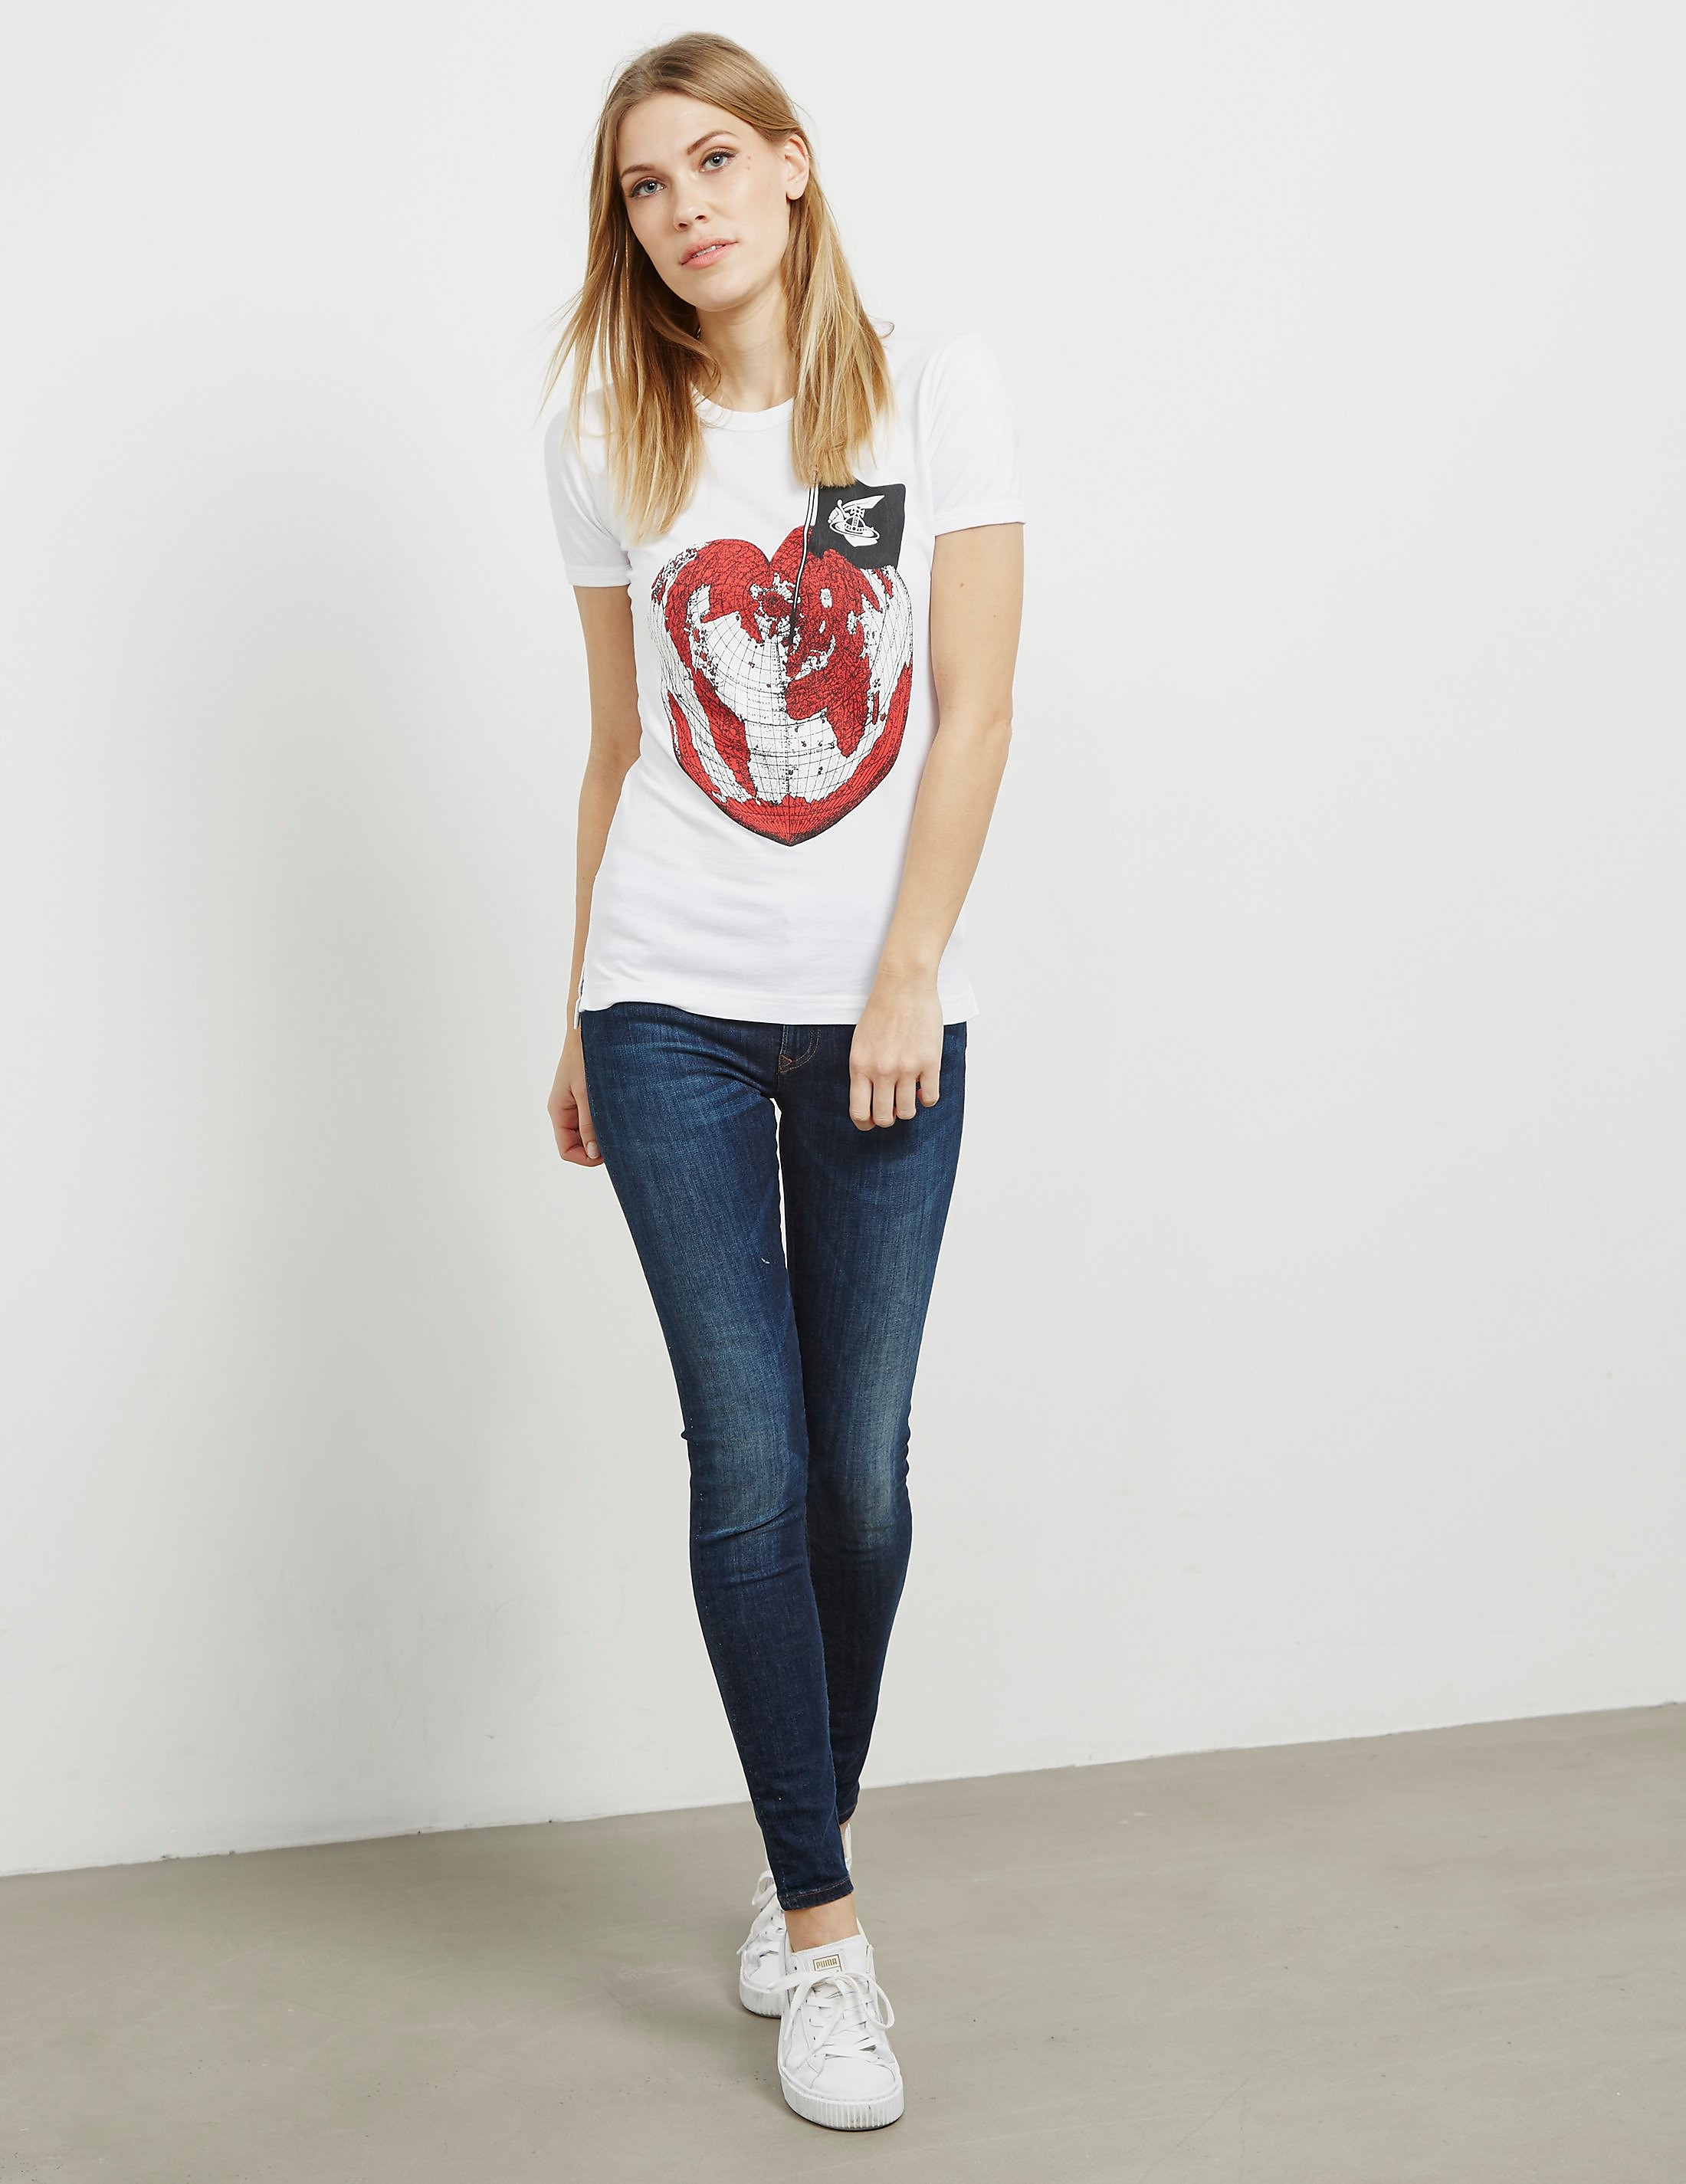 Vivienne Westwood Anglomania Heart Short Sleeve T-Shirt